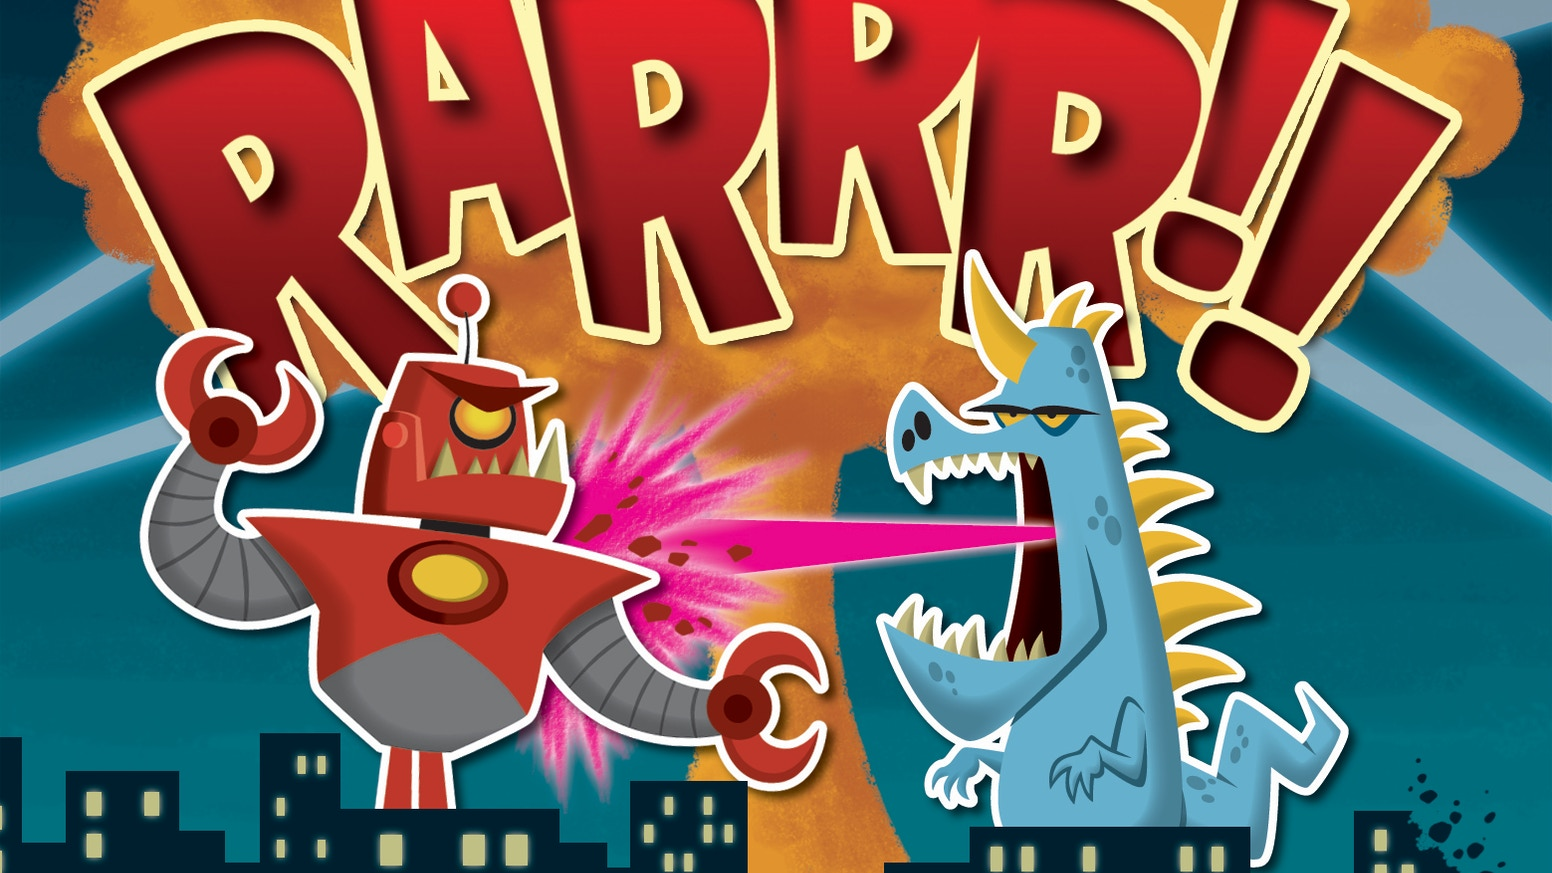 Build terrifying monsters and send them out to pulverize cities in this raucous card game from APE Games, makers of Kill the Overlord! You can still get RARRR!! - just click the button below!